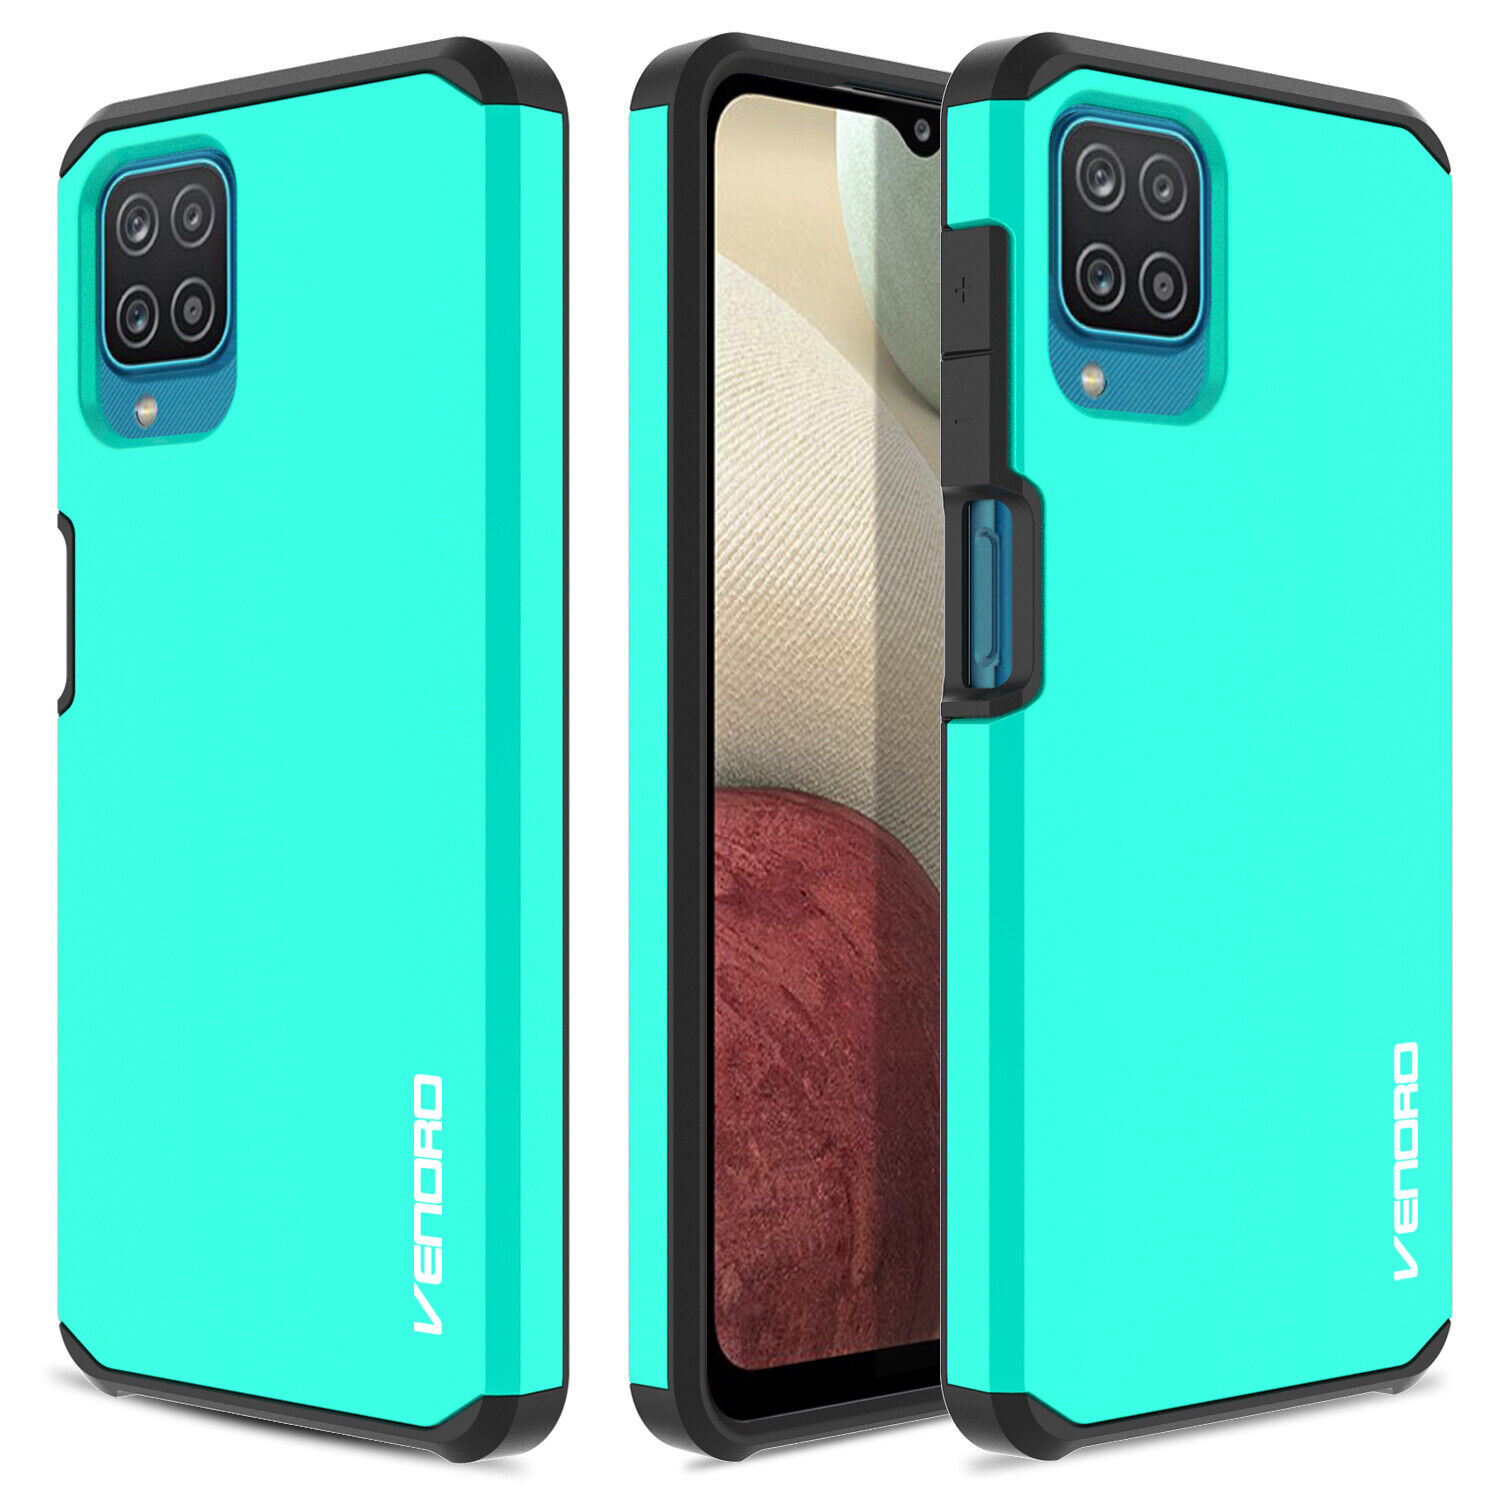 For Samsung Galaxy A12 A32 5G Rugged Armor Case Slim Cover /HD Screen Protector Cases, Covers & Skins